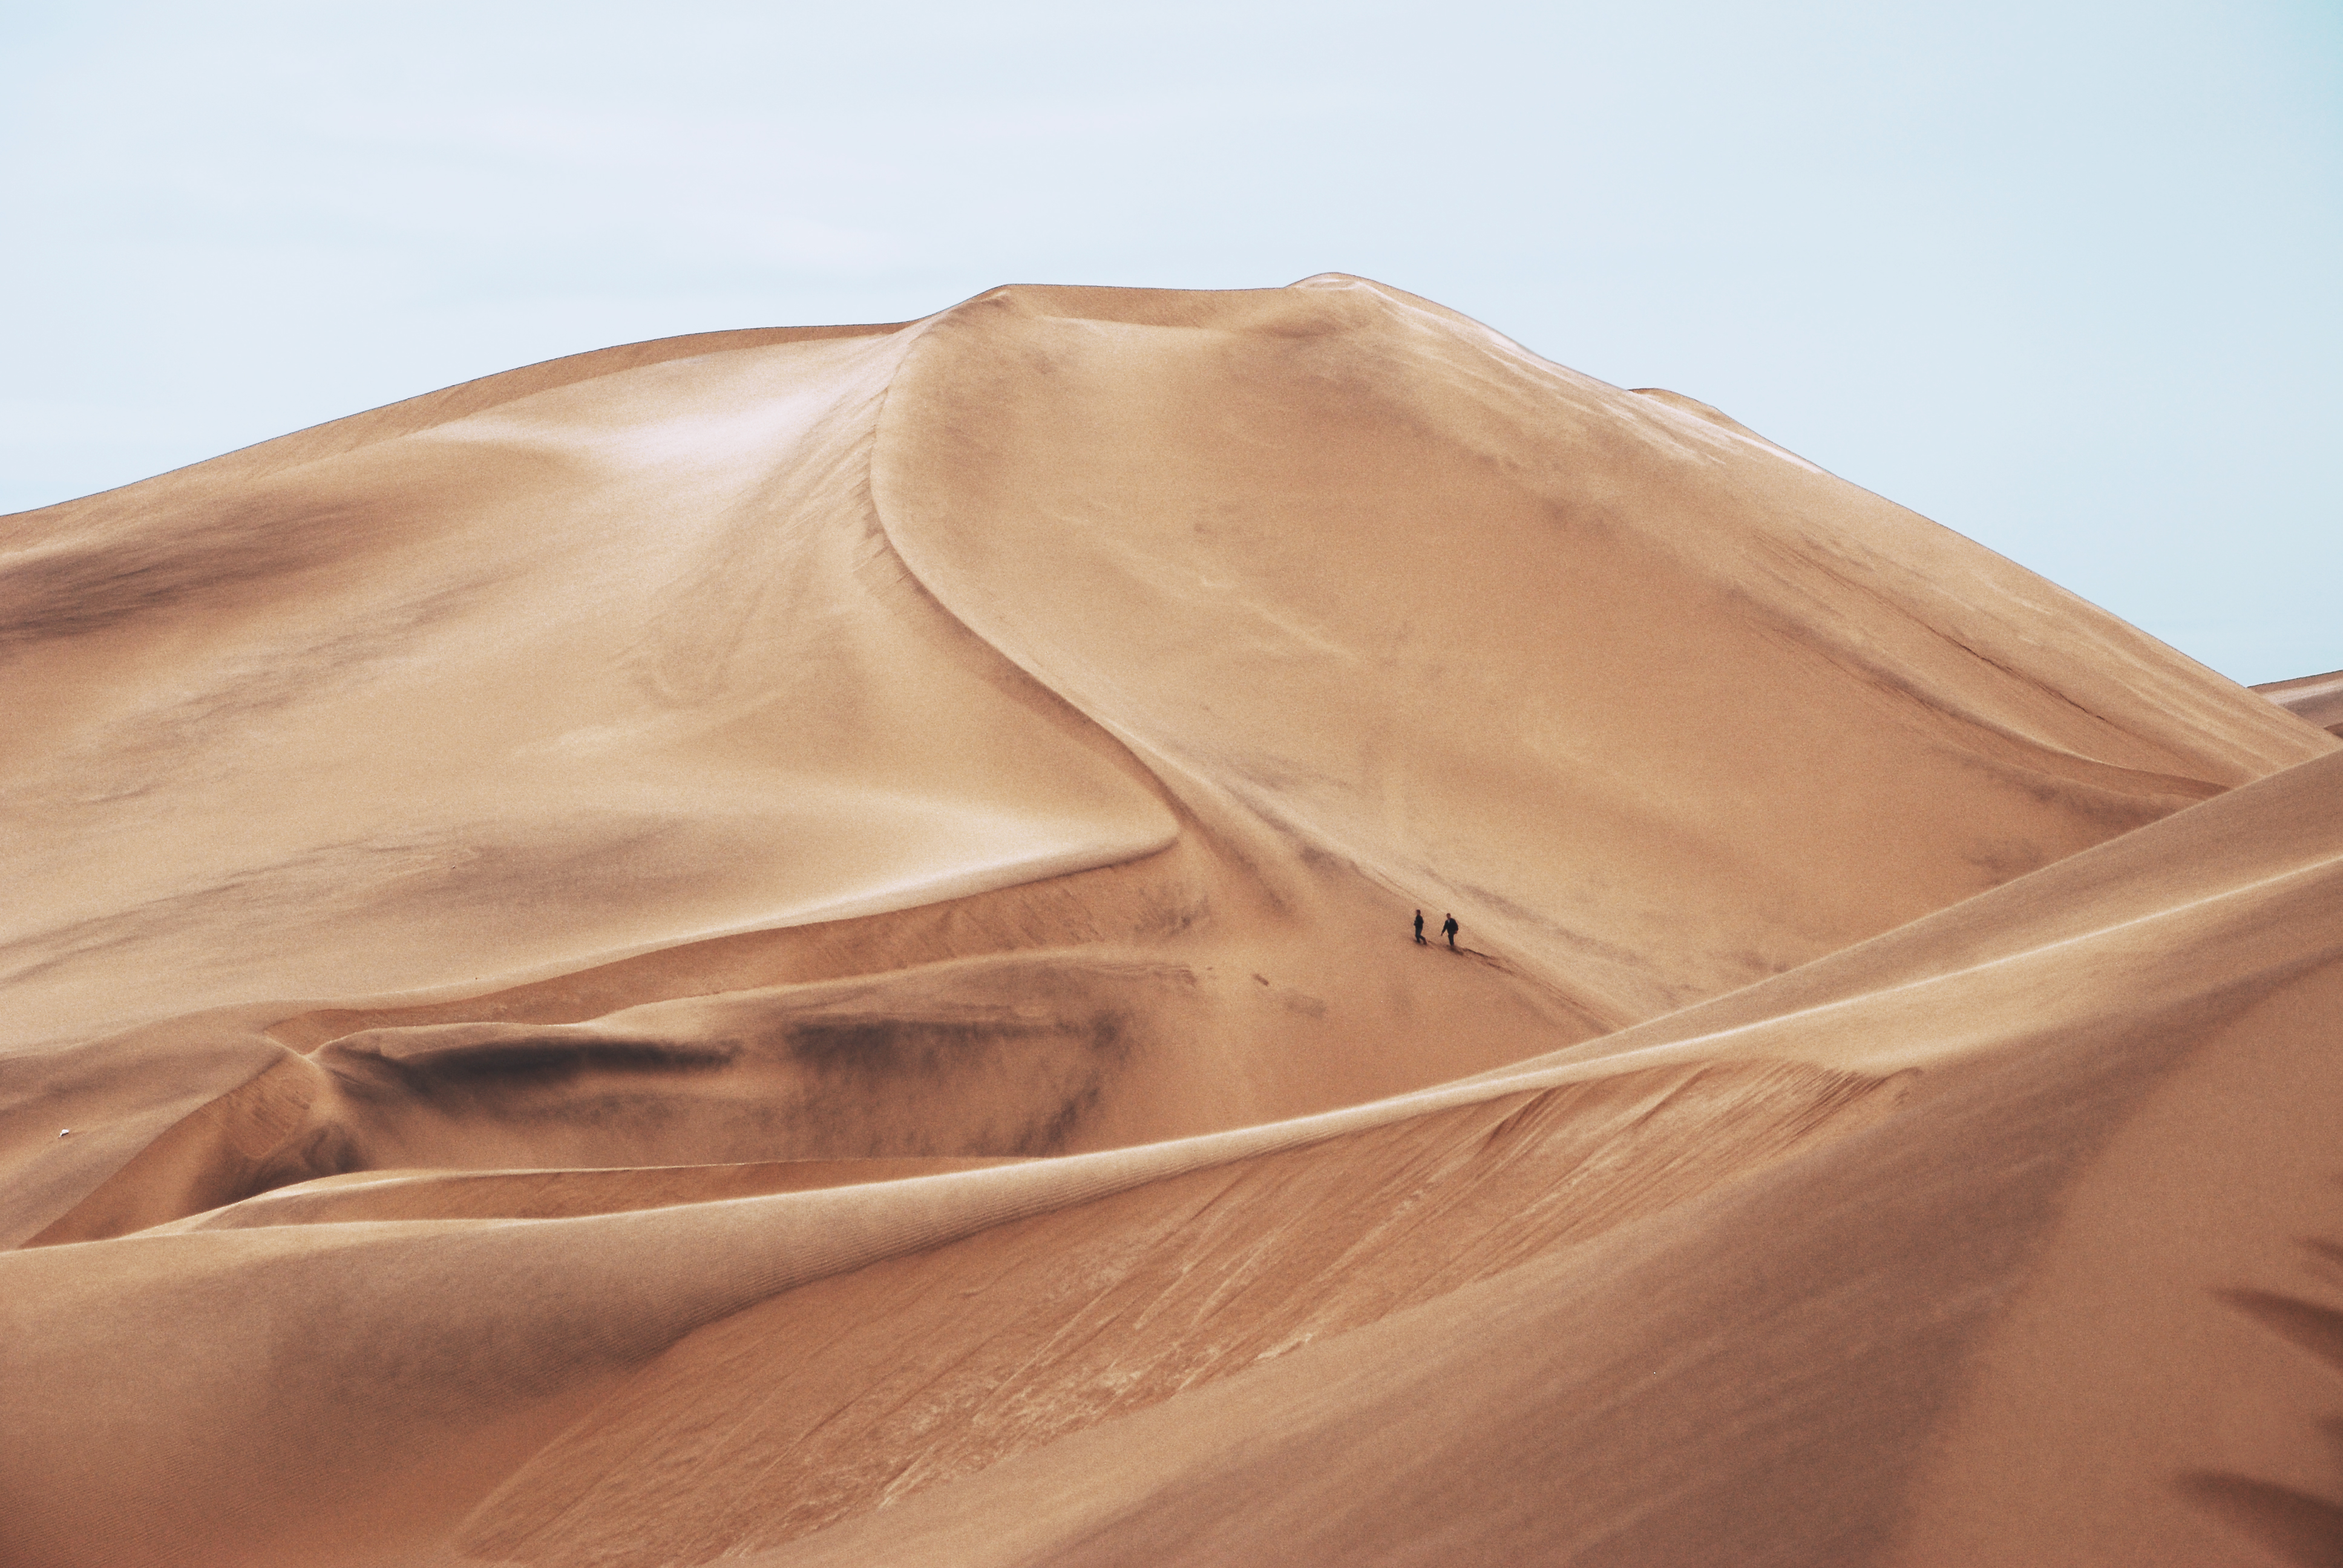 I was in Namibia directing a professional stills and video crew for a commercial commission. Tracks can take months to be erased by the wind so we had to trek for miles around potential scenes so no to disturb the pristine sand dunes.